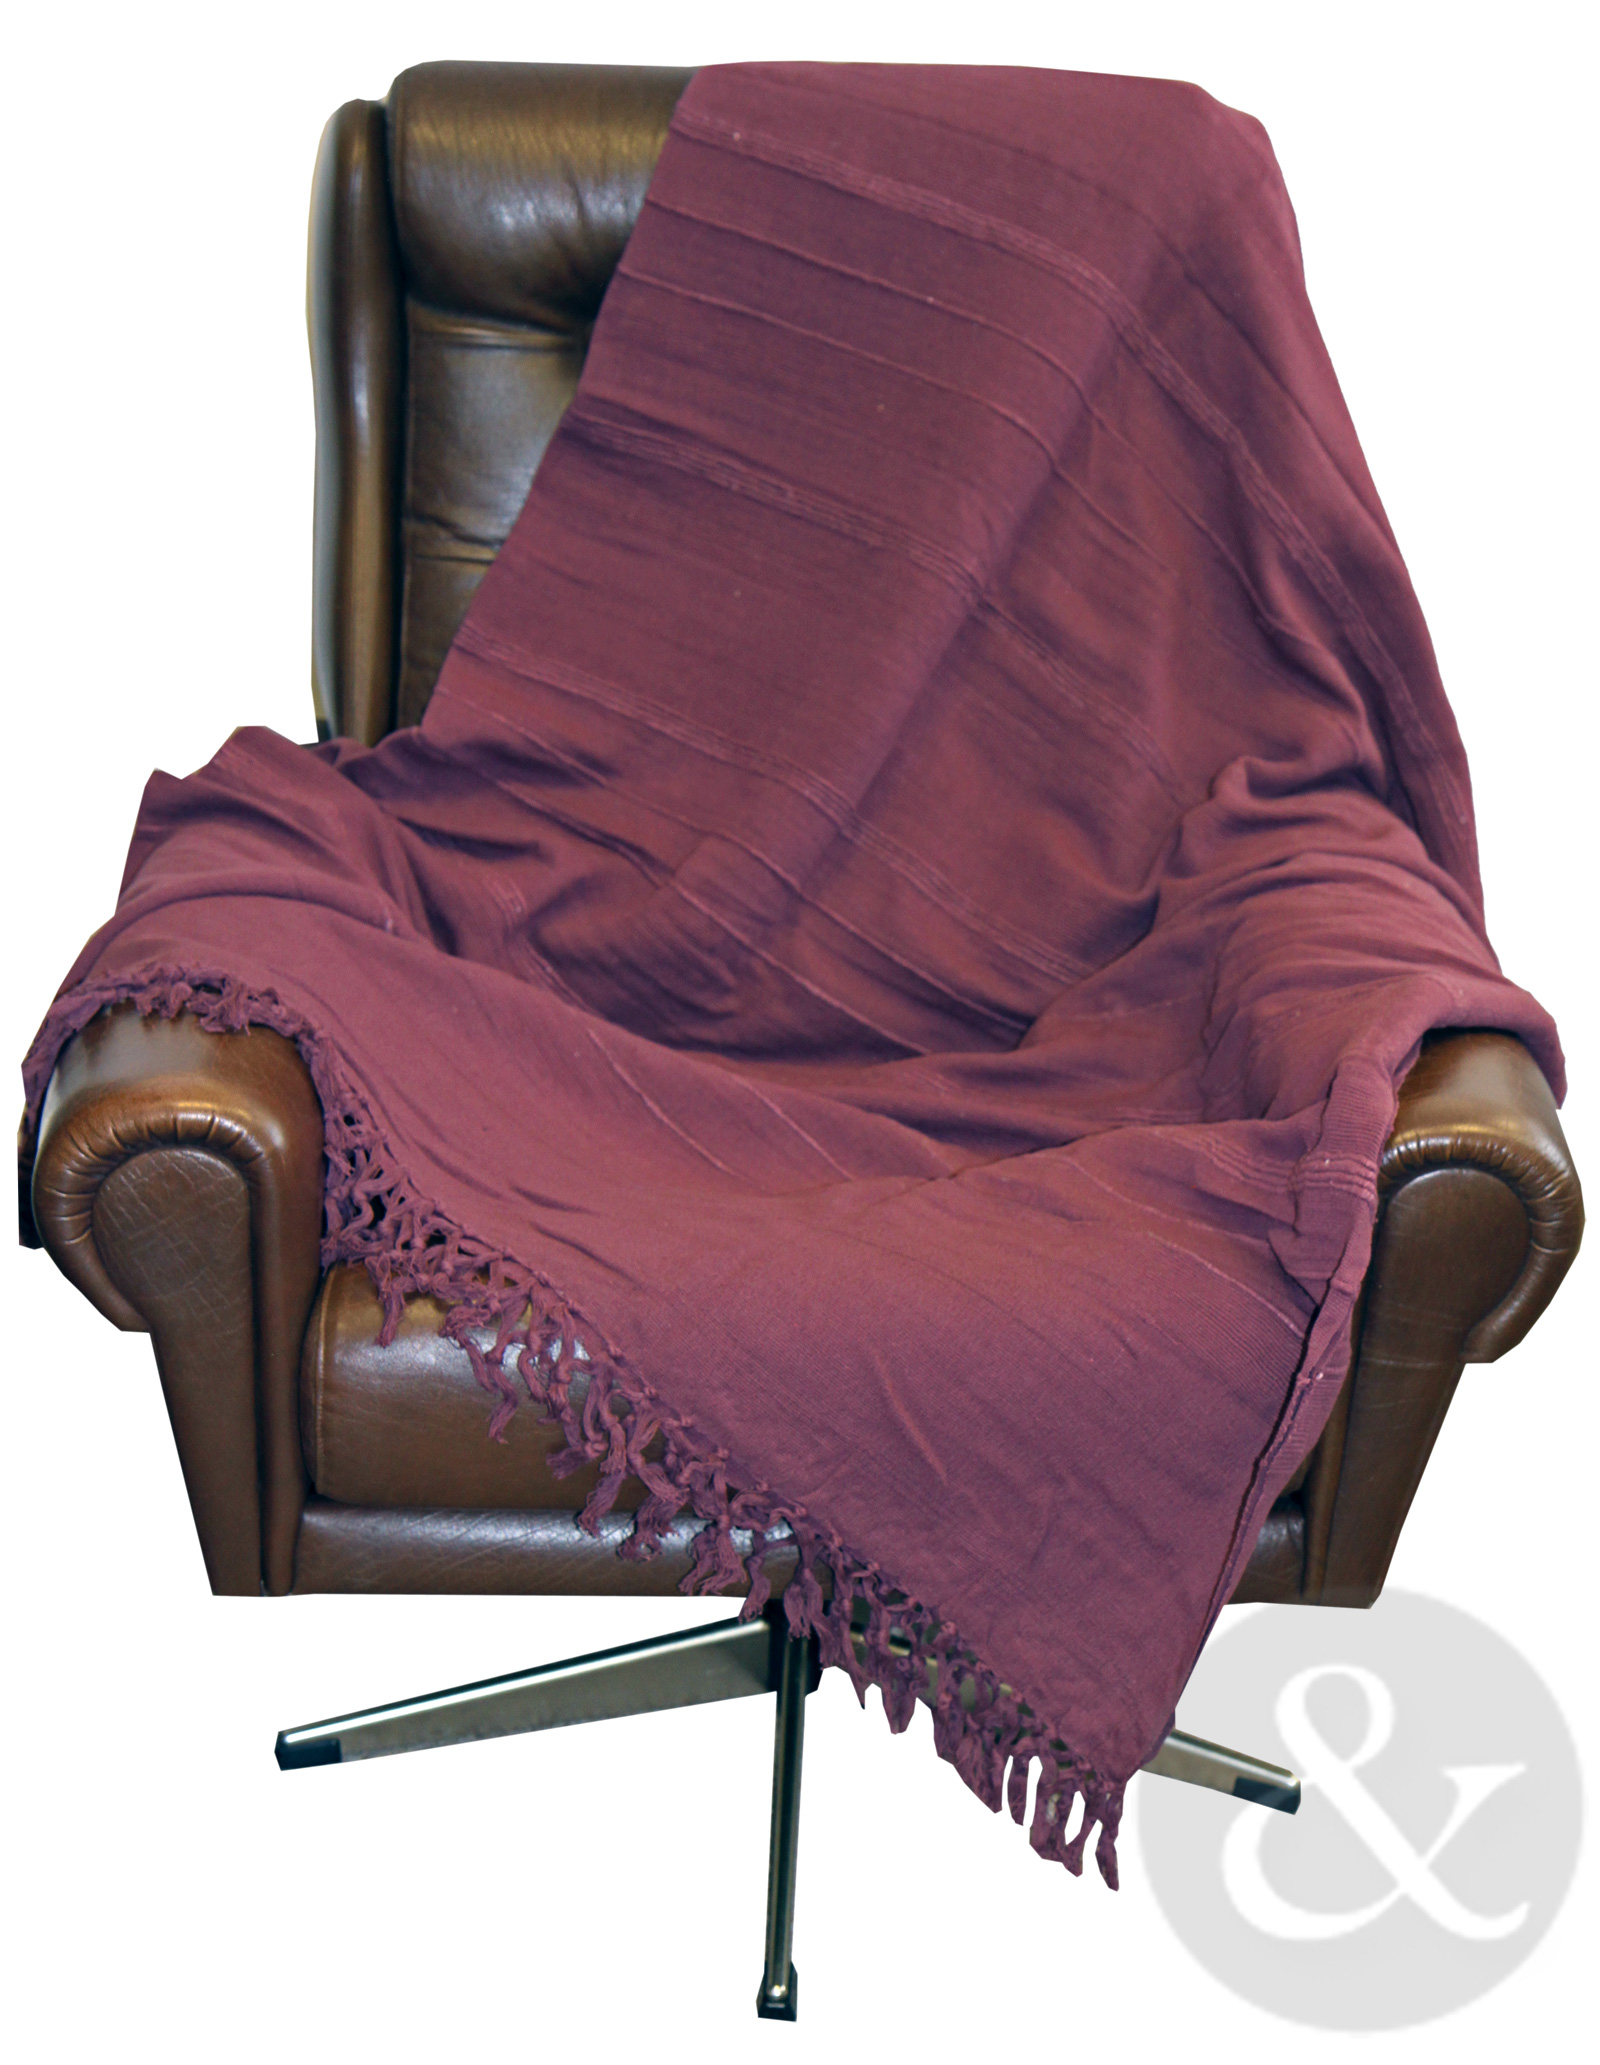 xl sofa throws affordable in dubai 100 cotton extra large luxury thermal throw over